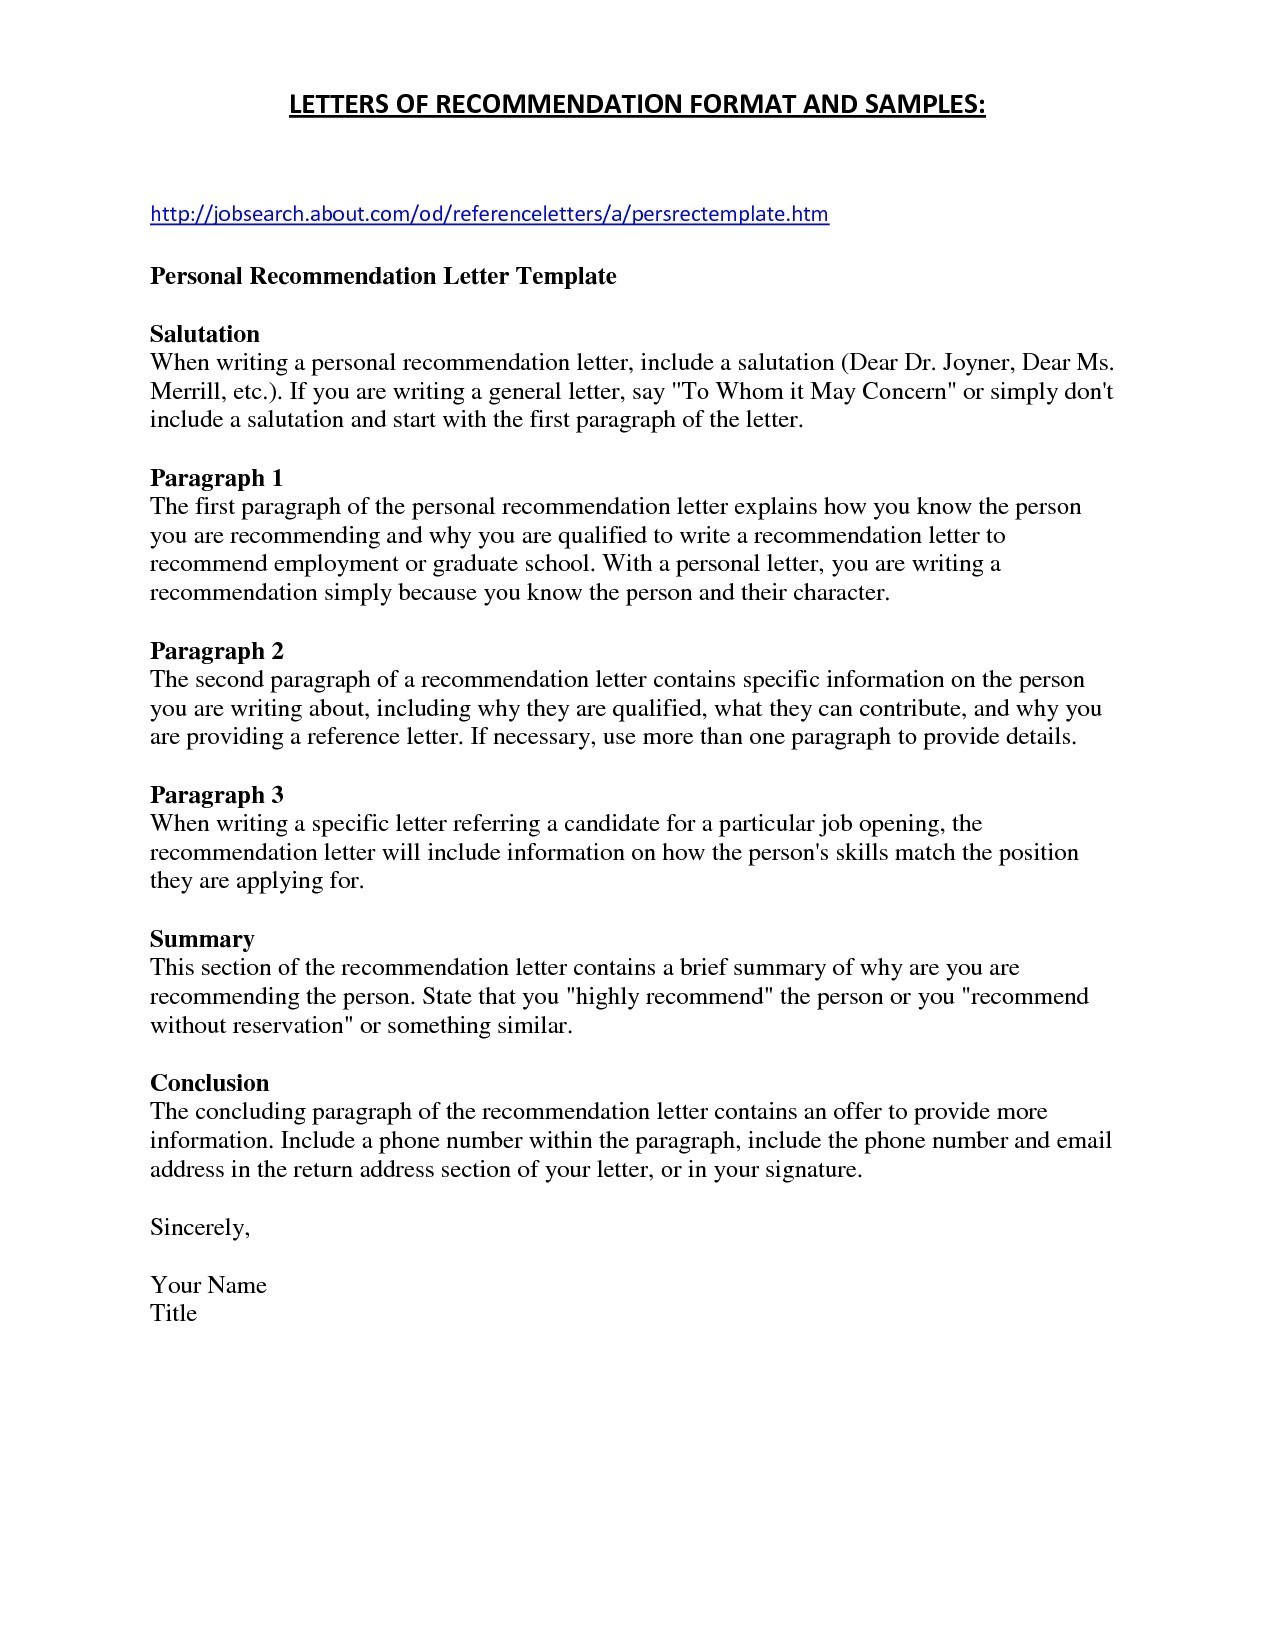 Letter Of Recommendation for Physical therapy School Template - Letter Re Mendation for Physical therapy Job Refrence Mintbarry